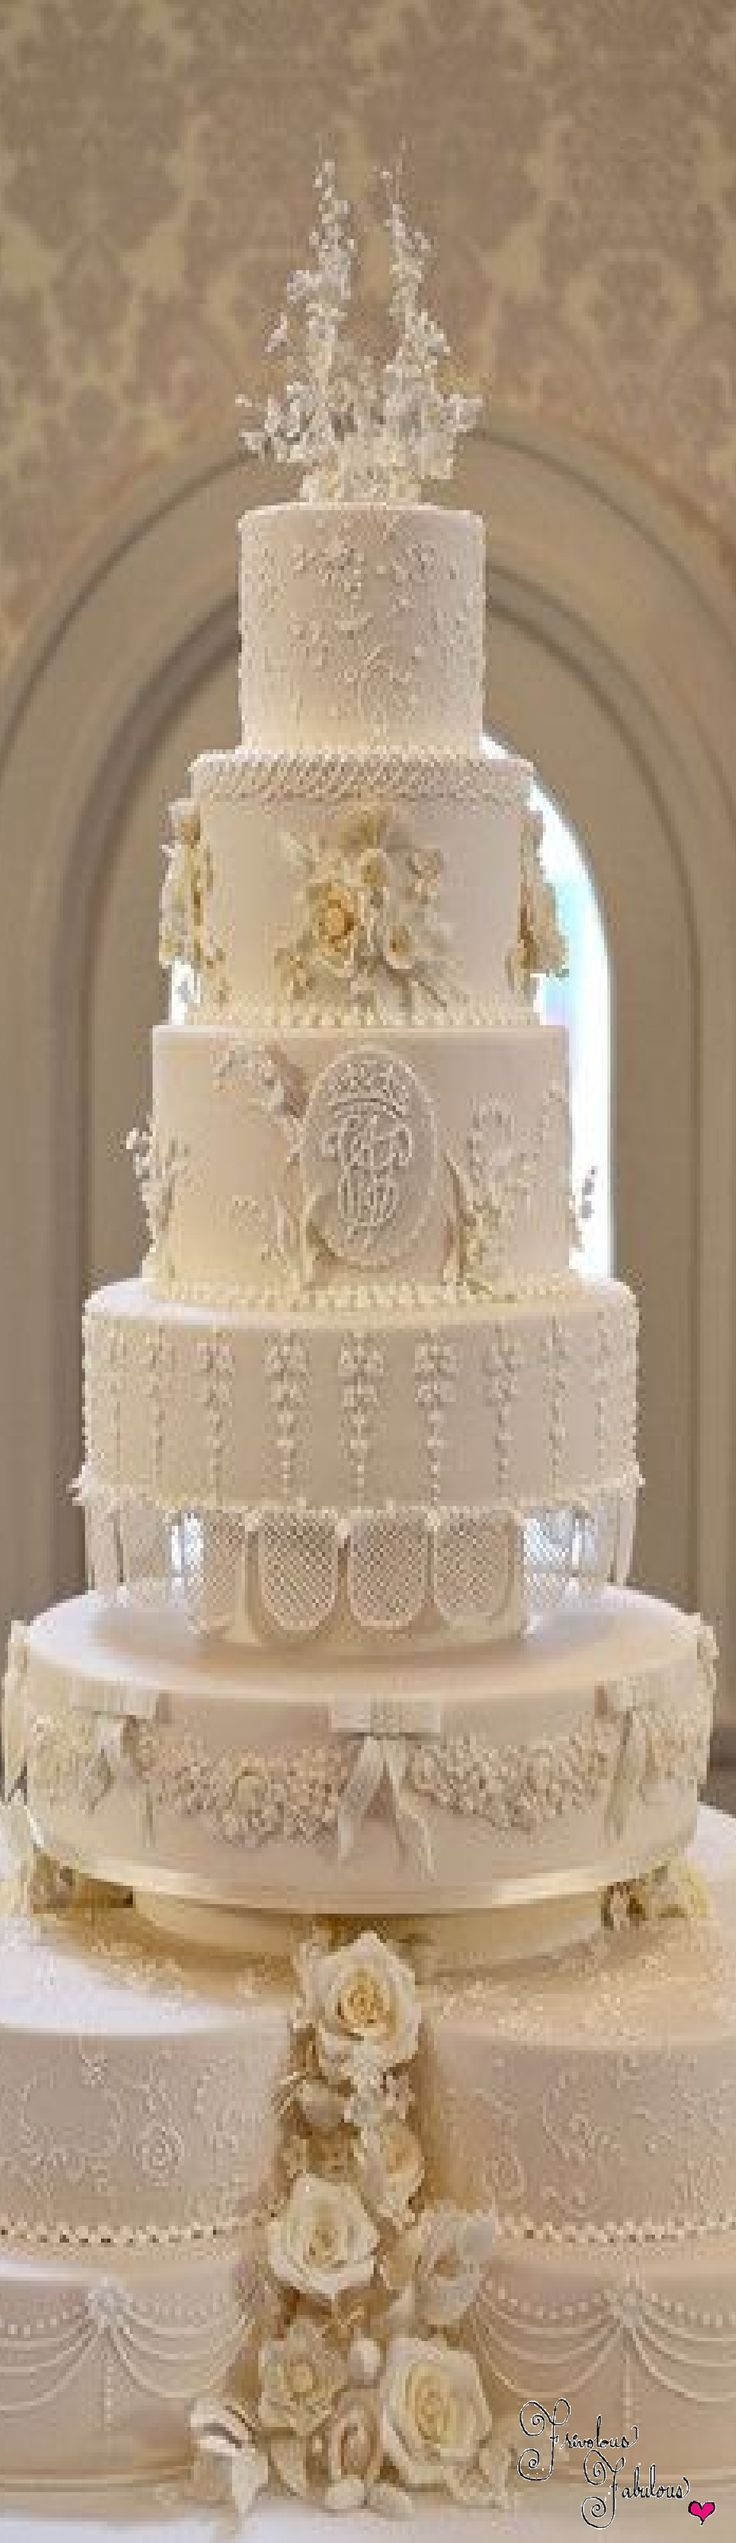 wedding cake piping best 20 piping patterns ideas on icing tips 23469